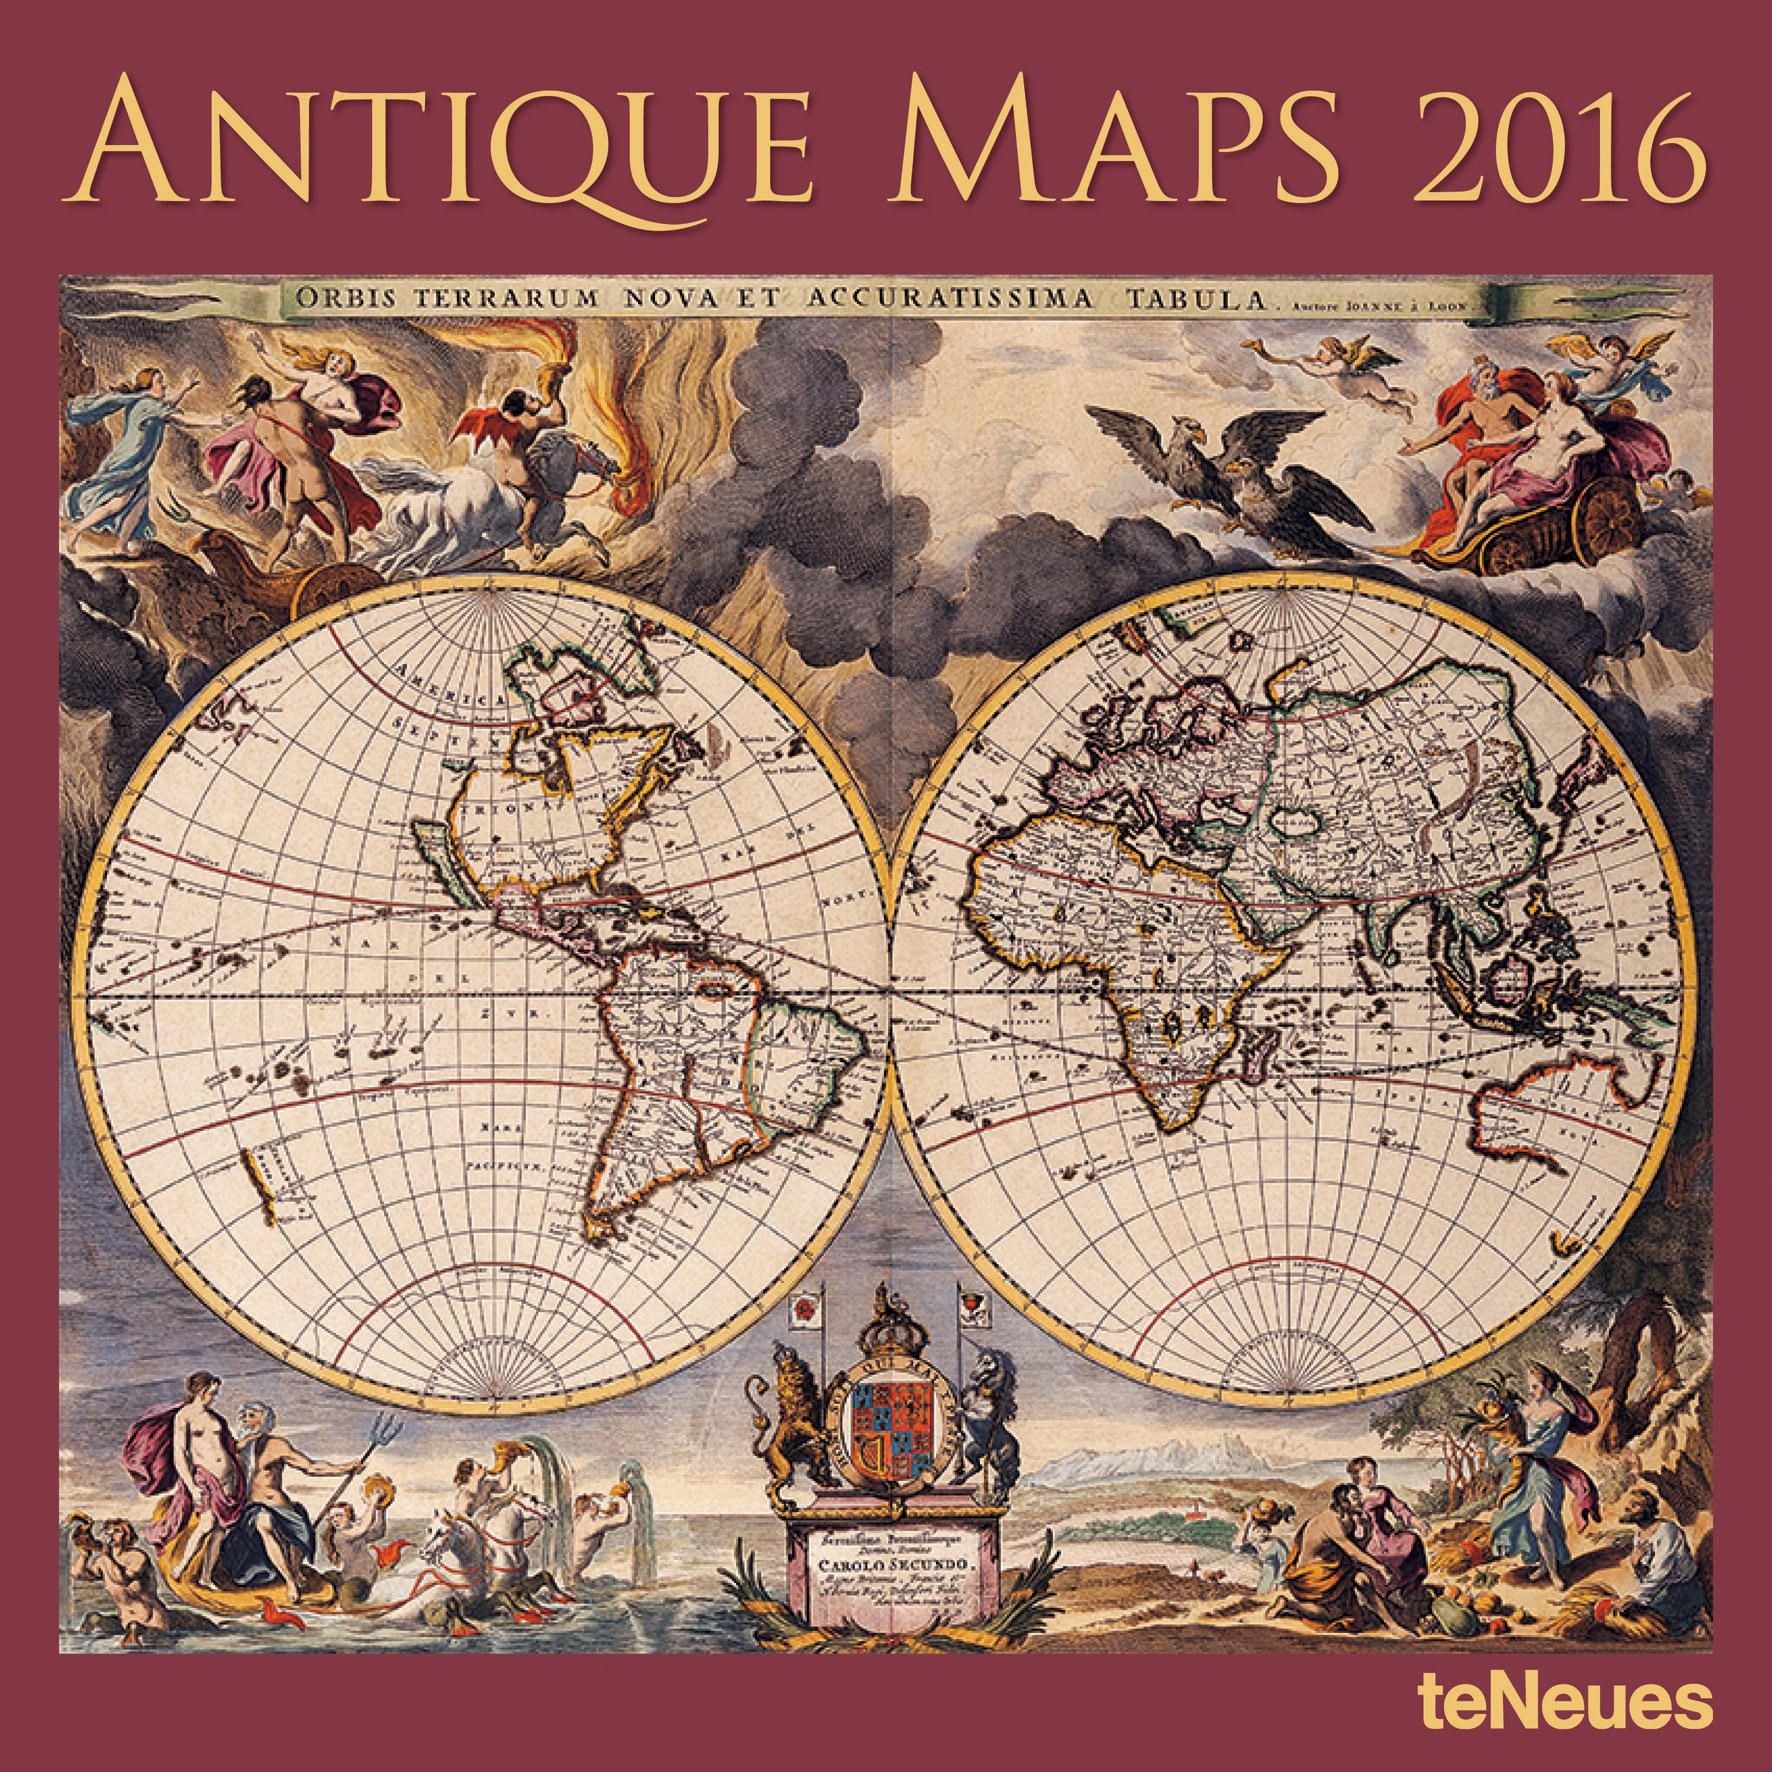 2016 antique maps wall calendar amazon teneues publishing books gumiabroncs